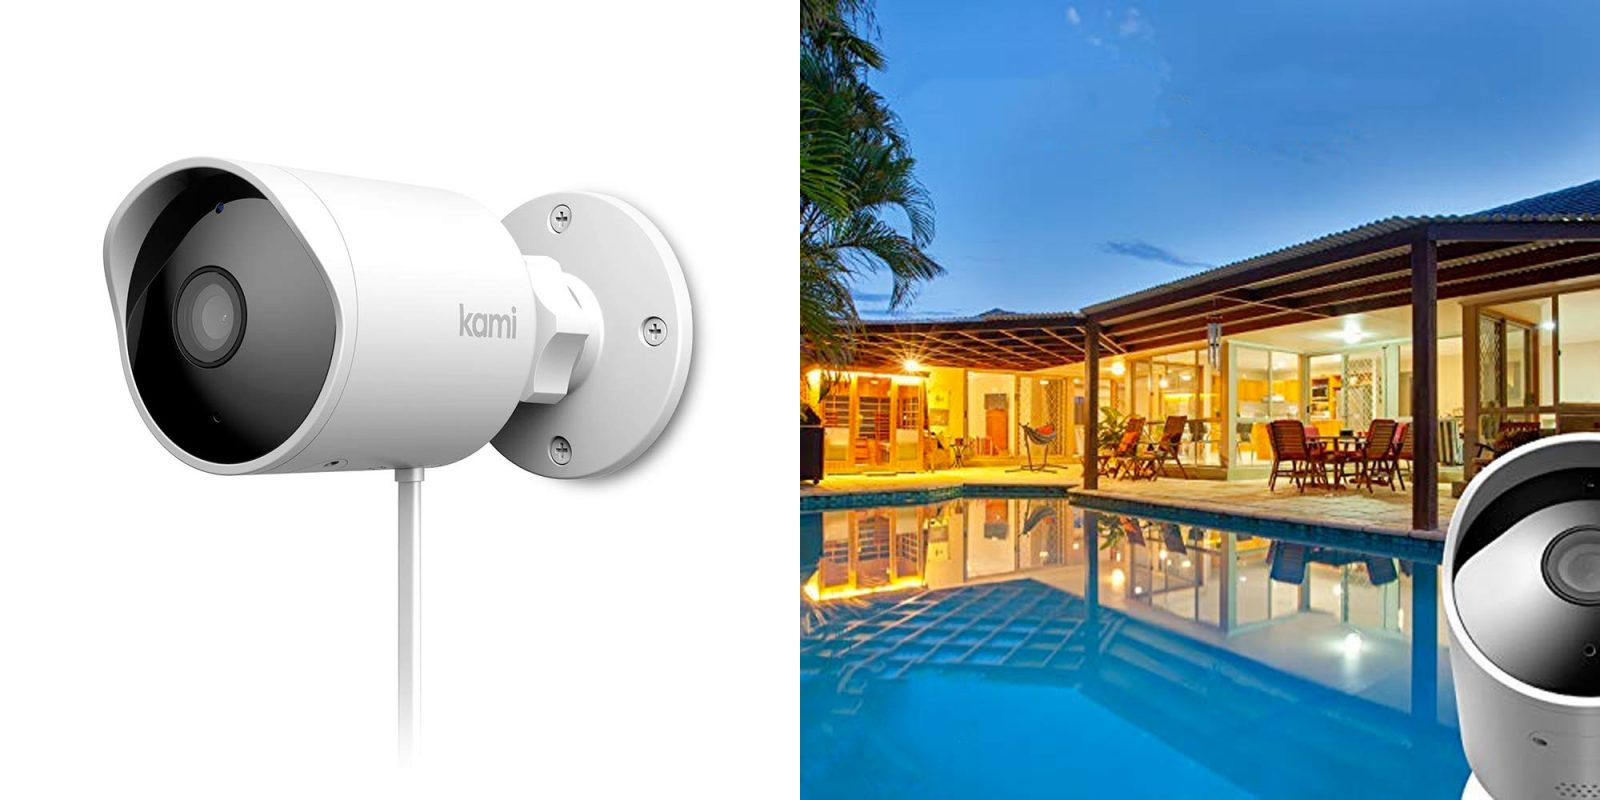 YI's Kami Outdoor Security Camera packs full color night vision + more at $100